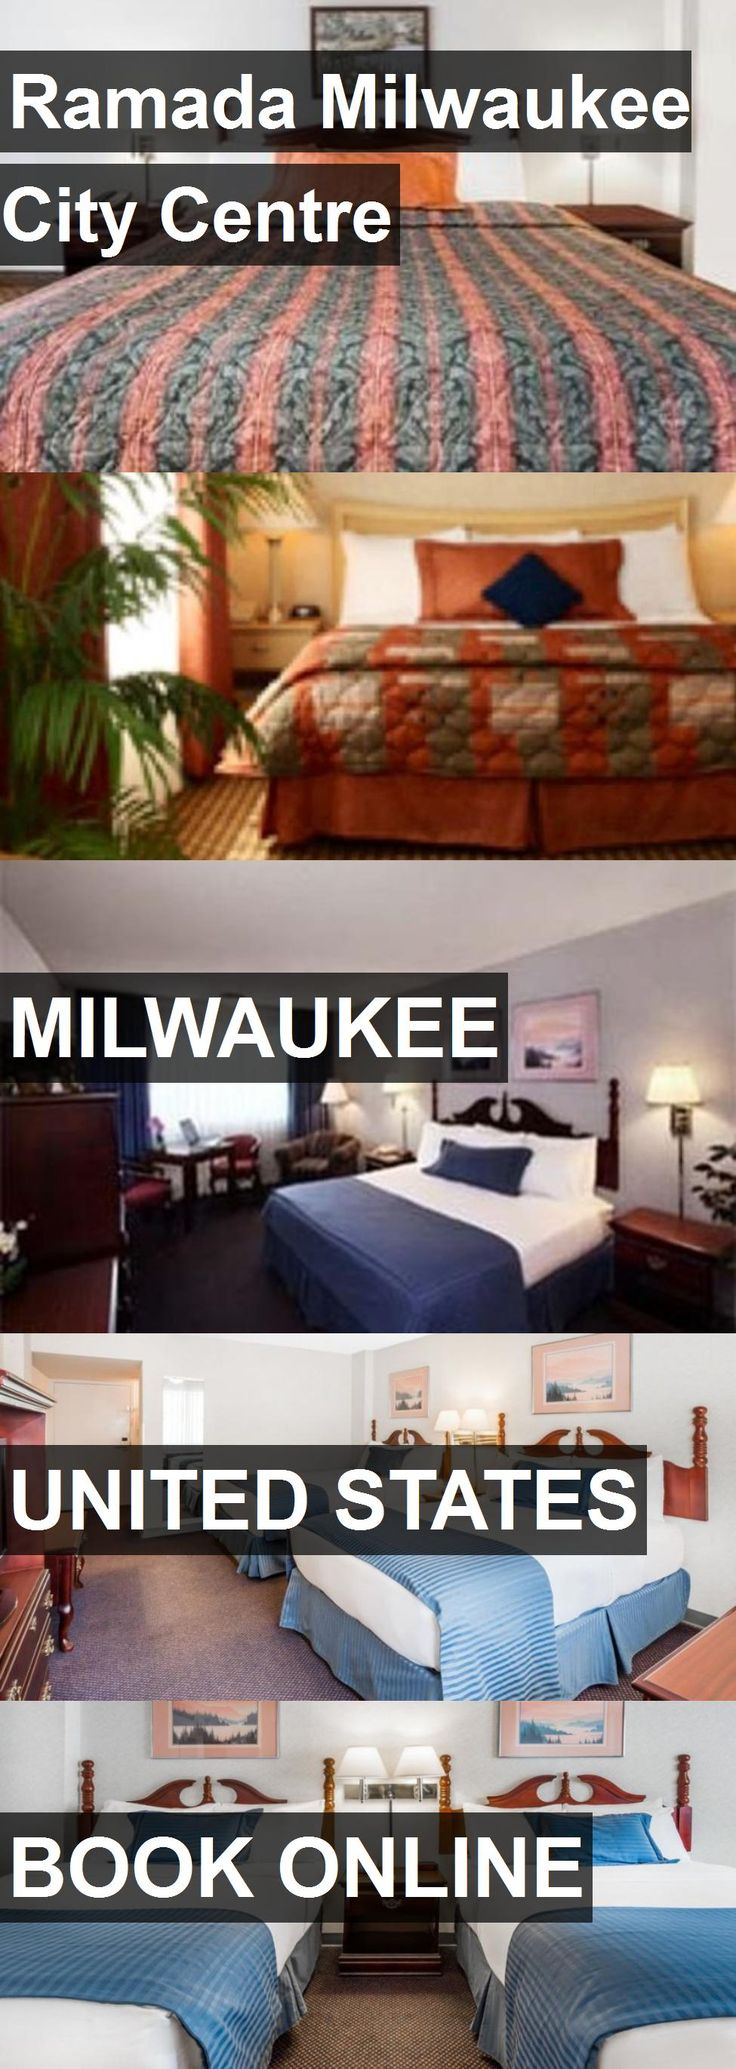 Hotel Ramada Milwaukee City Centre in Milwaukee, United States. For more information, photos, reviews and best prices please follow the link. #UnitedStates #Milwaukee #travel #vacation #hotel